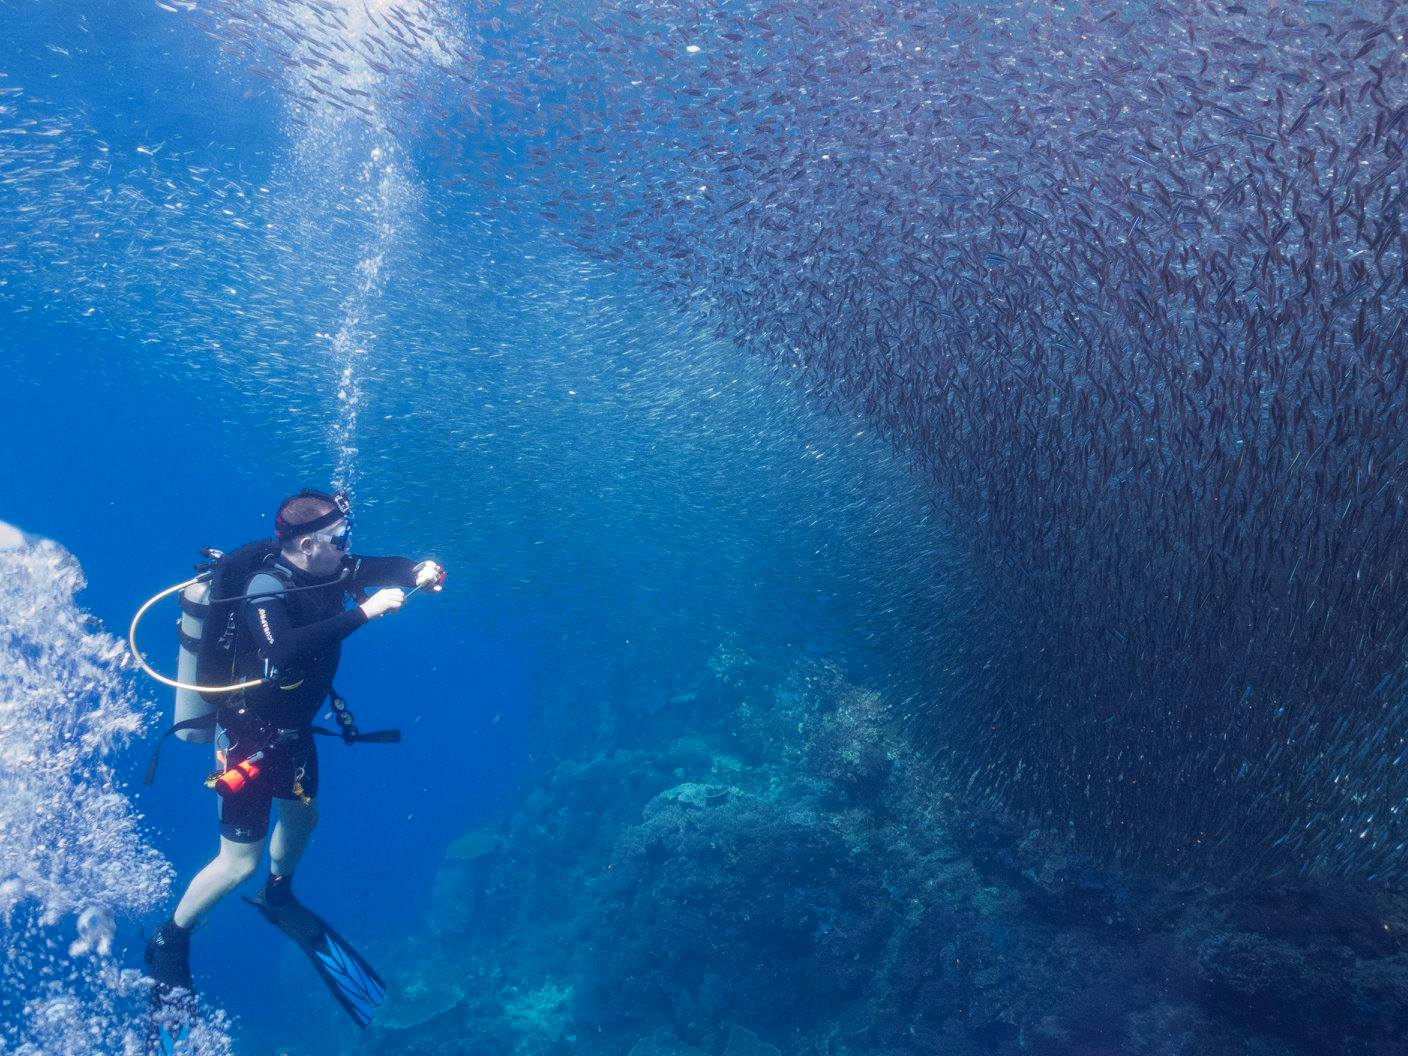 Diving in Raja Ampat, Indonesia. Swarms of silversides